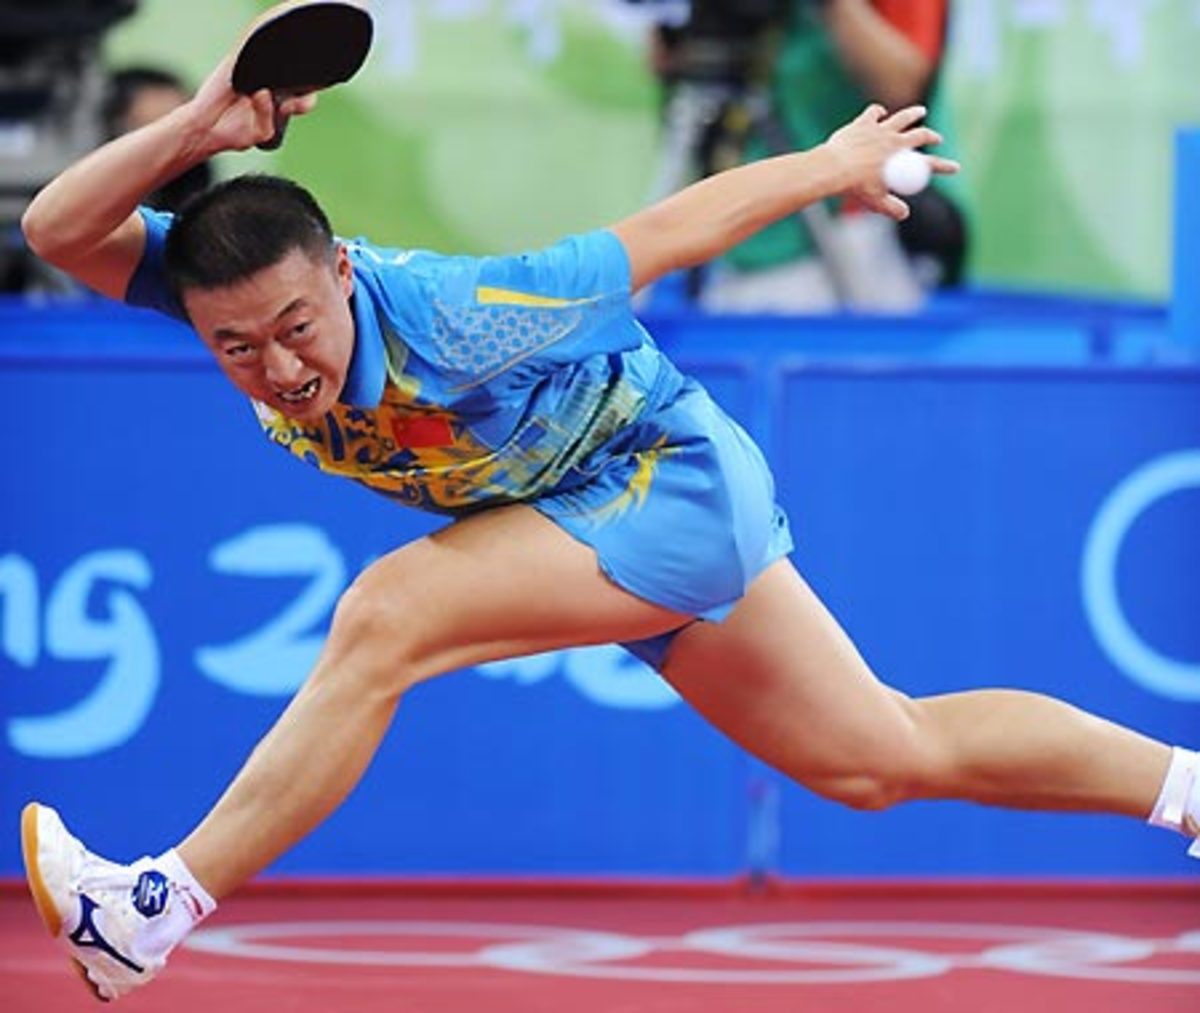 Wang Hao of China in 2008 Olympic - This is how you win! - Ping Pong and Table Tennis Difference, History, Fun Facts